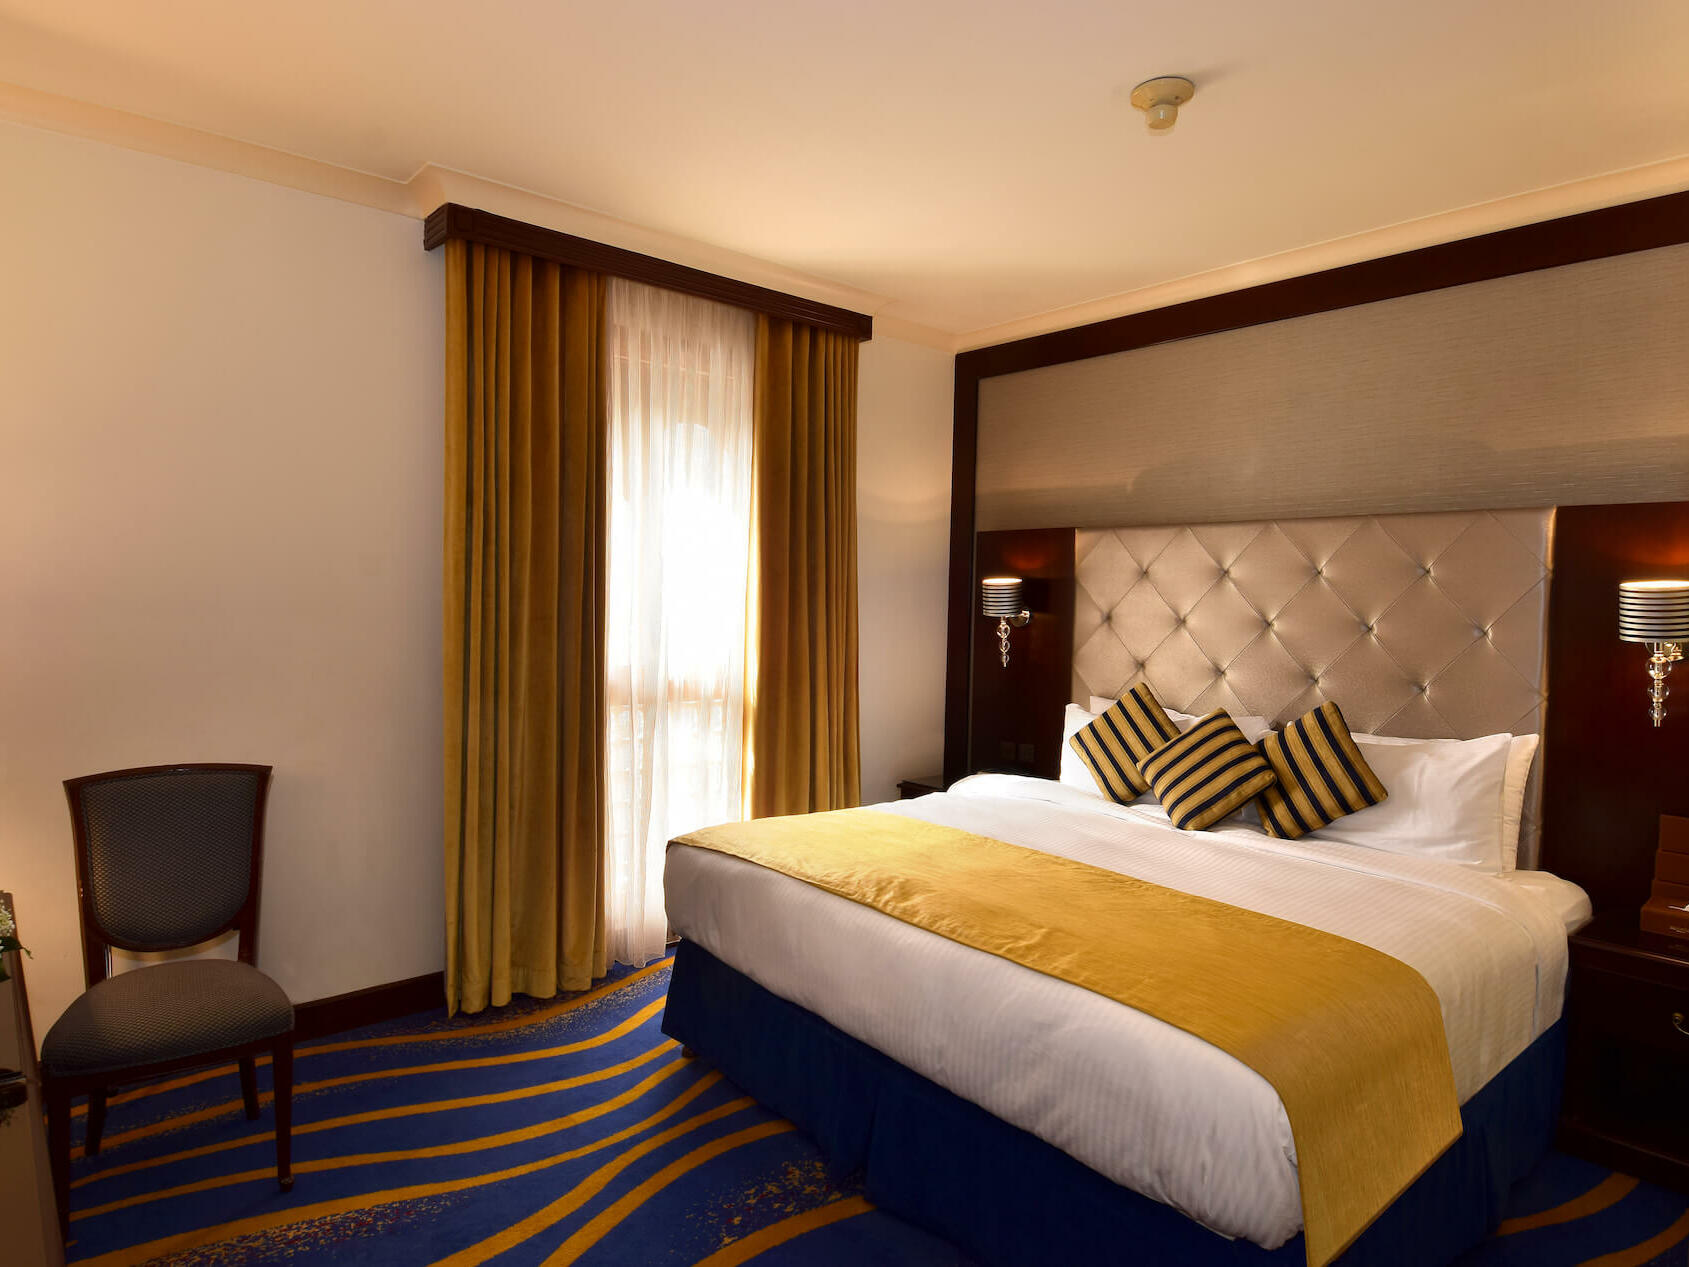 Deluxe King Bed Room City View